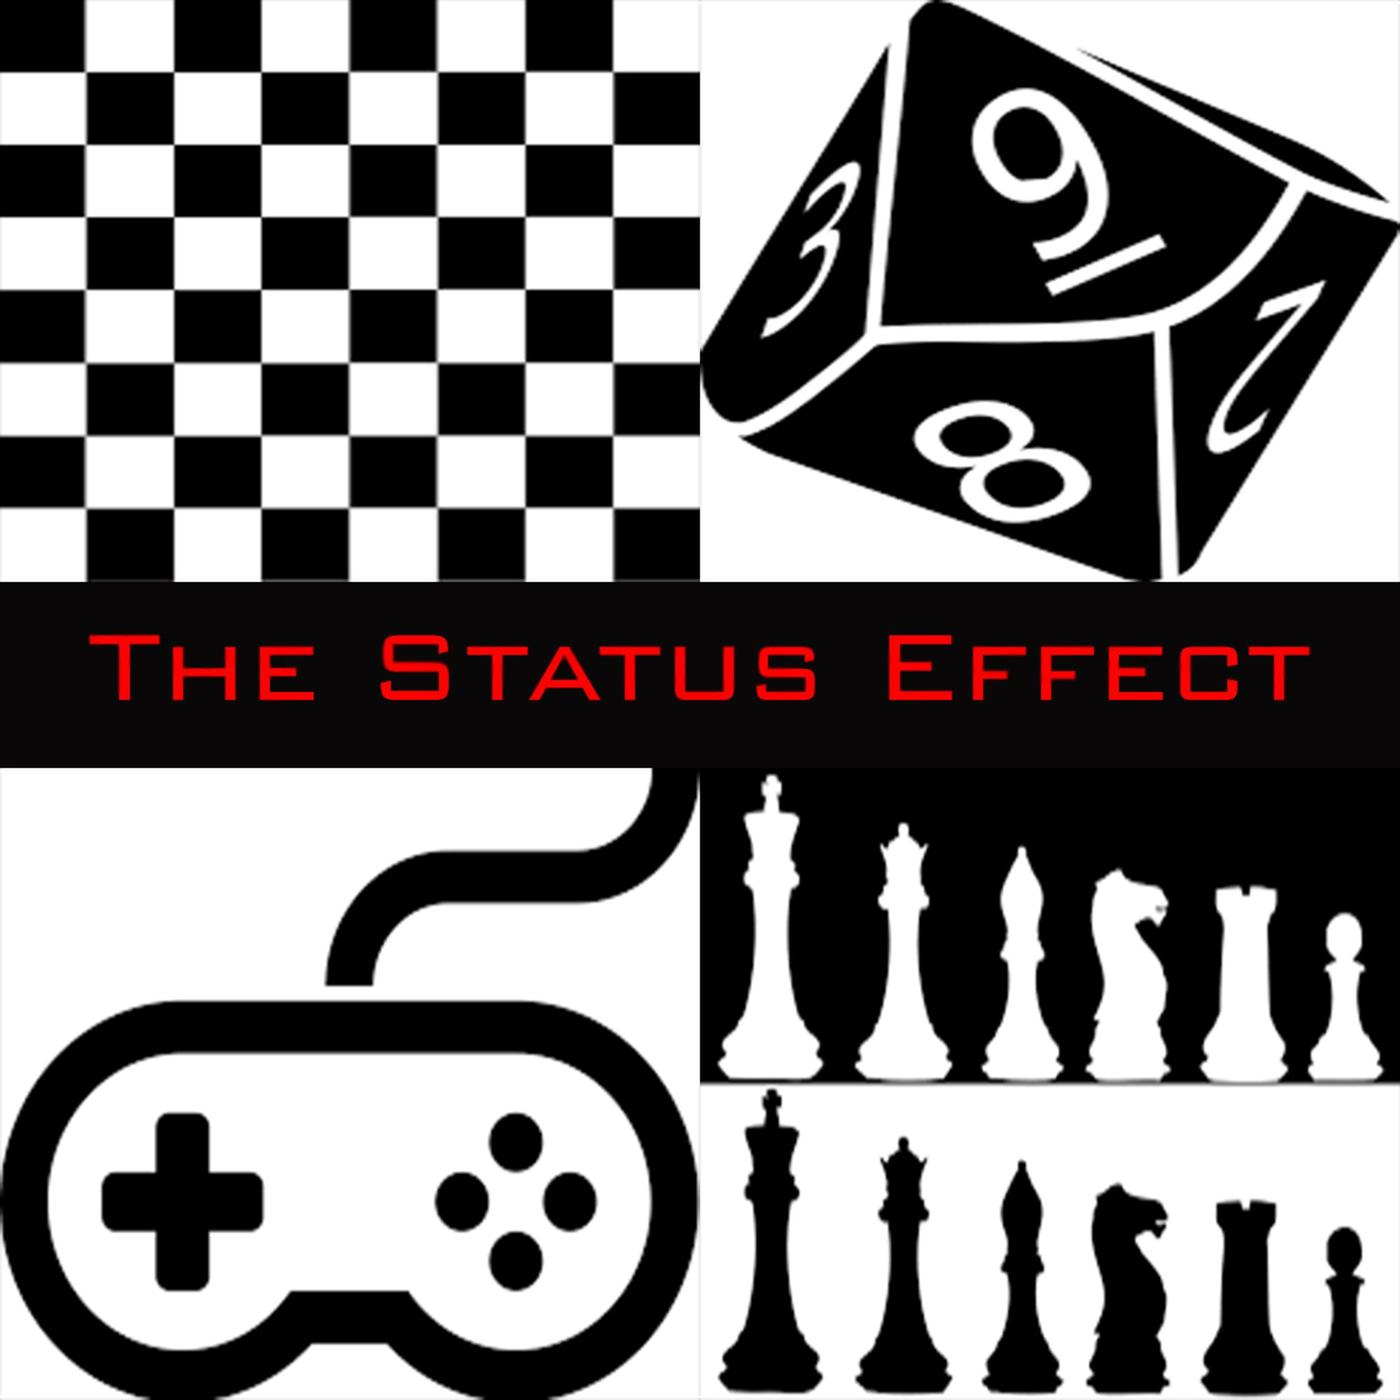 The Status Effect Podcast: A Gaming Comedy Show - The Status